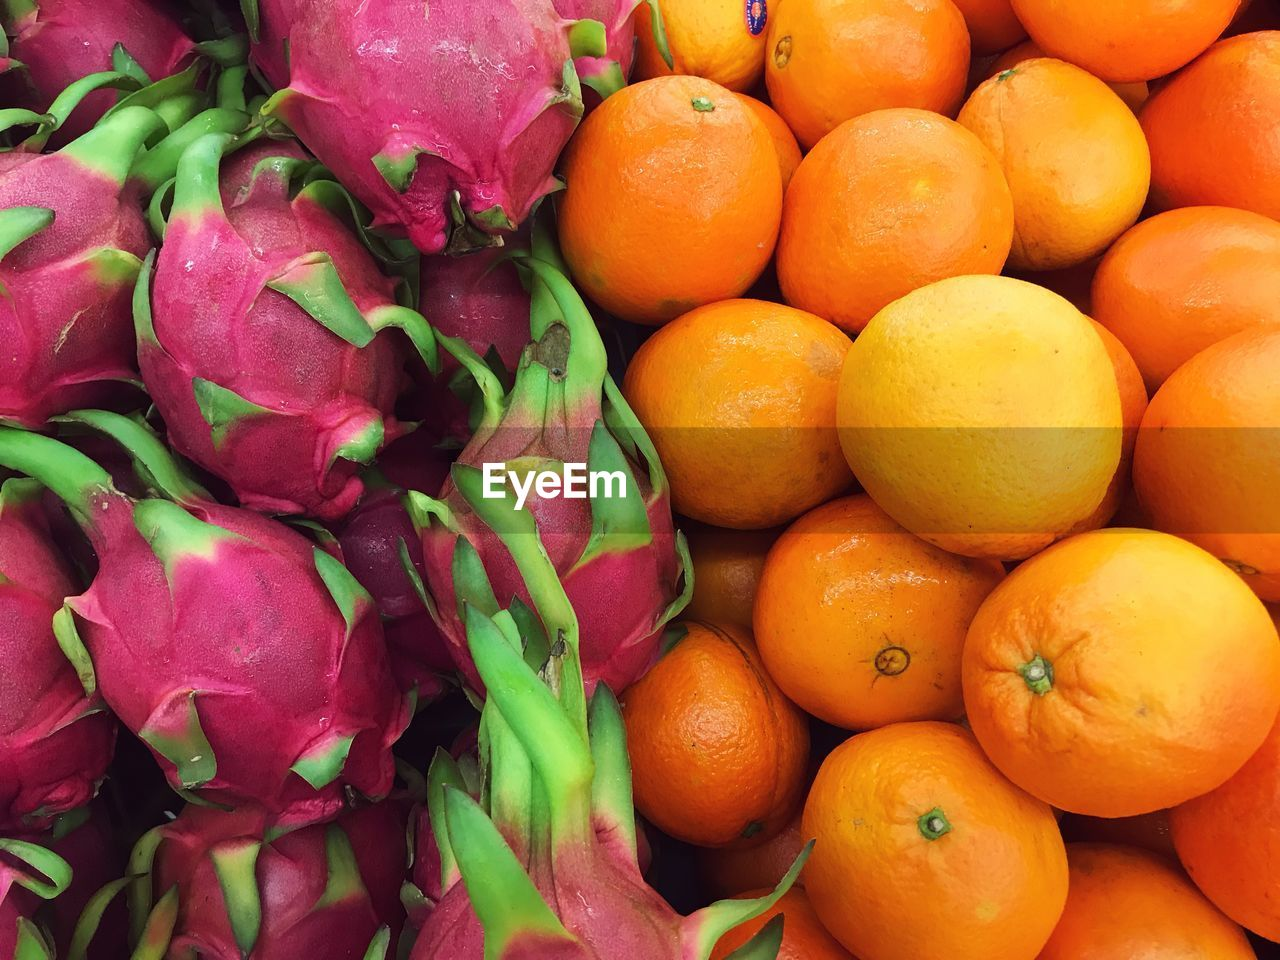 food, healthy eating, food and drink, wellbeing, freshness, market, for sale, backgrounds, full frame, retail, vegetable, market stall, choice, large group of objects, still life, orange color, fruit, no people, abundance, high angle view, organic, retail display, orange, sale, ripe